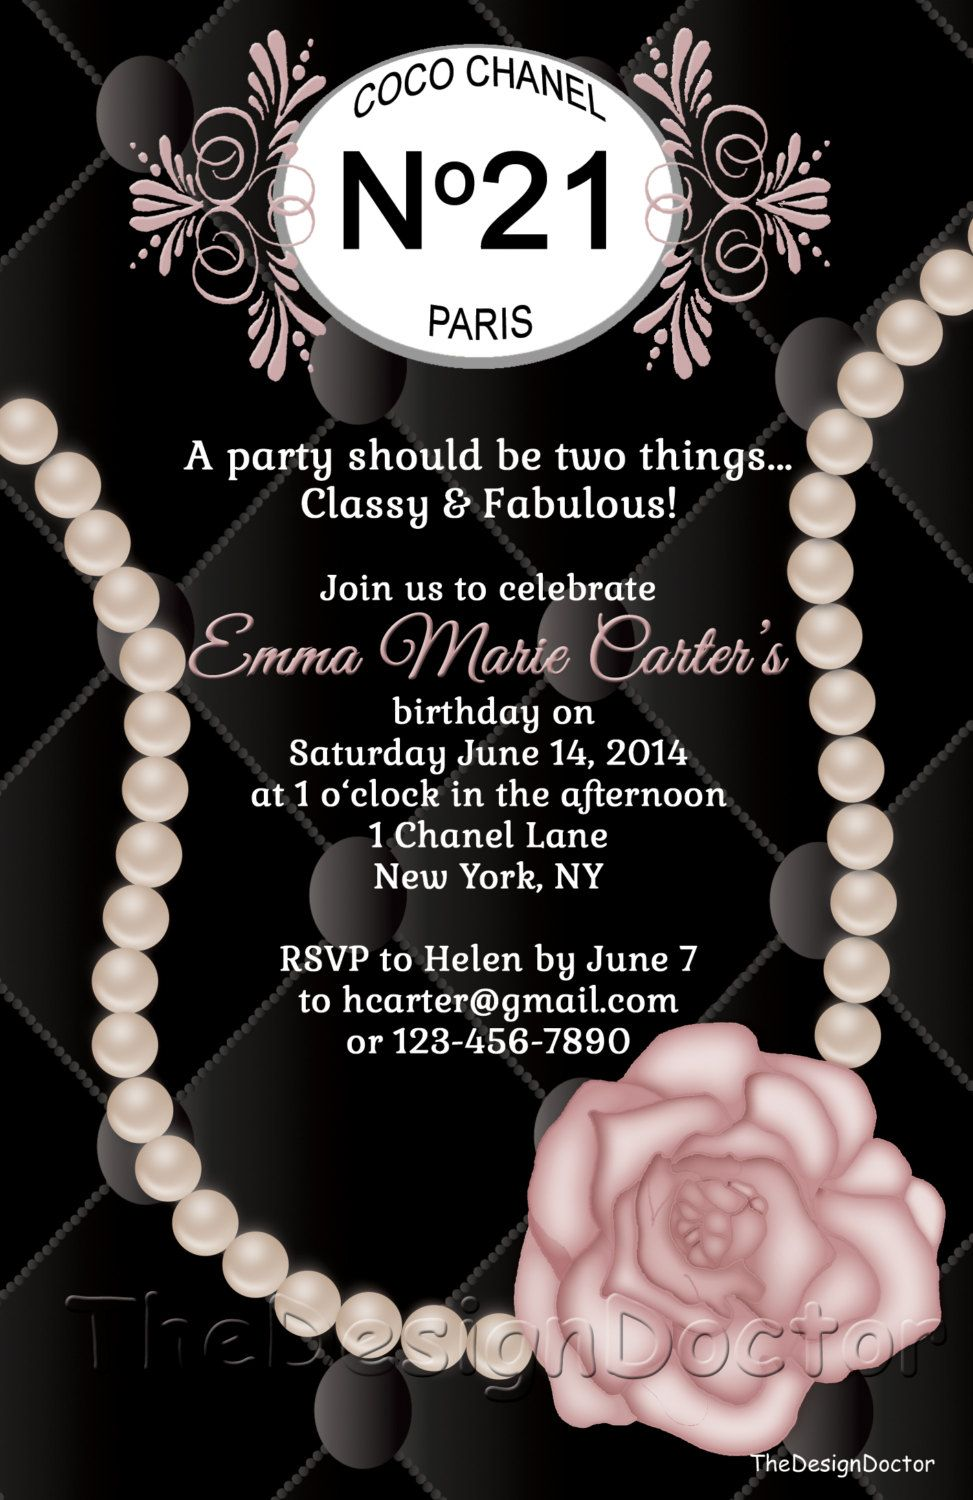 Coco Chanel Invitation Templates Google Search Sweet 16 In 2019